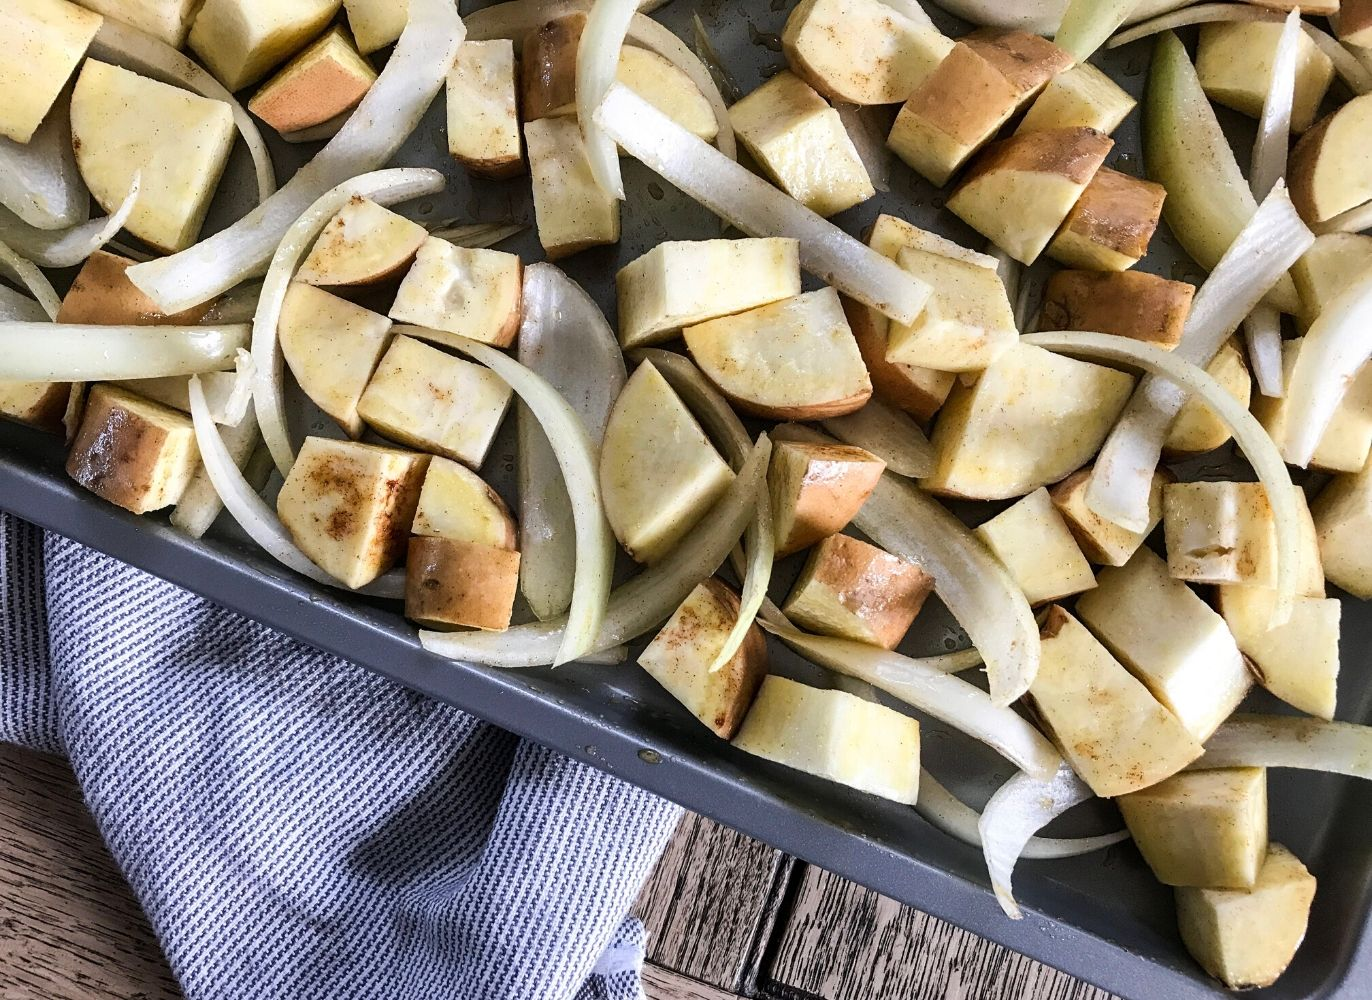 a white bowl of cinnamon white sweet potatoes and onion on a blue striped dish towel